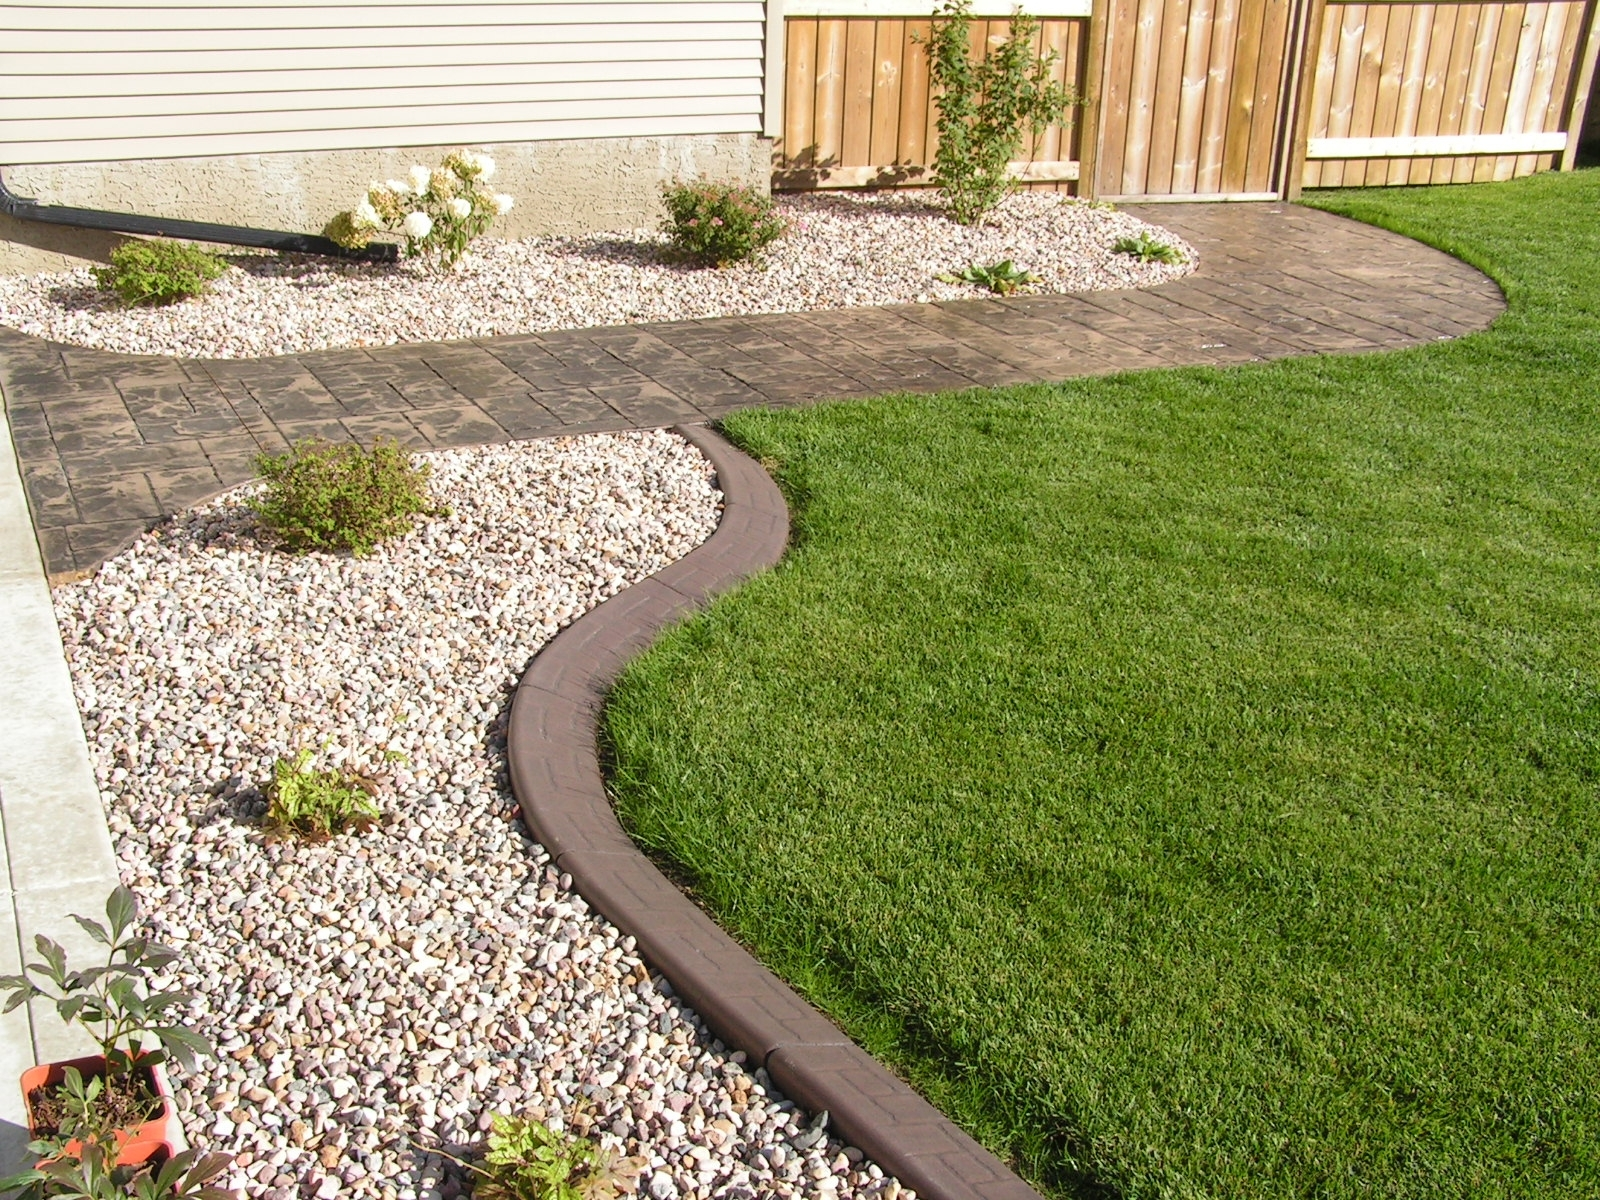 Landscaping Landscape Curbing Ideas Within Decorative Landscape Curbing Ideas Decorative Landscape Curbing Ideas